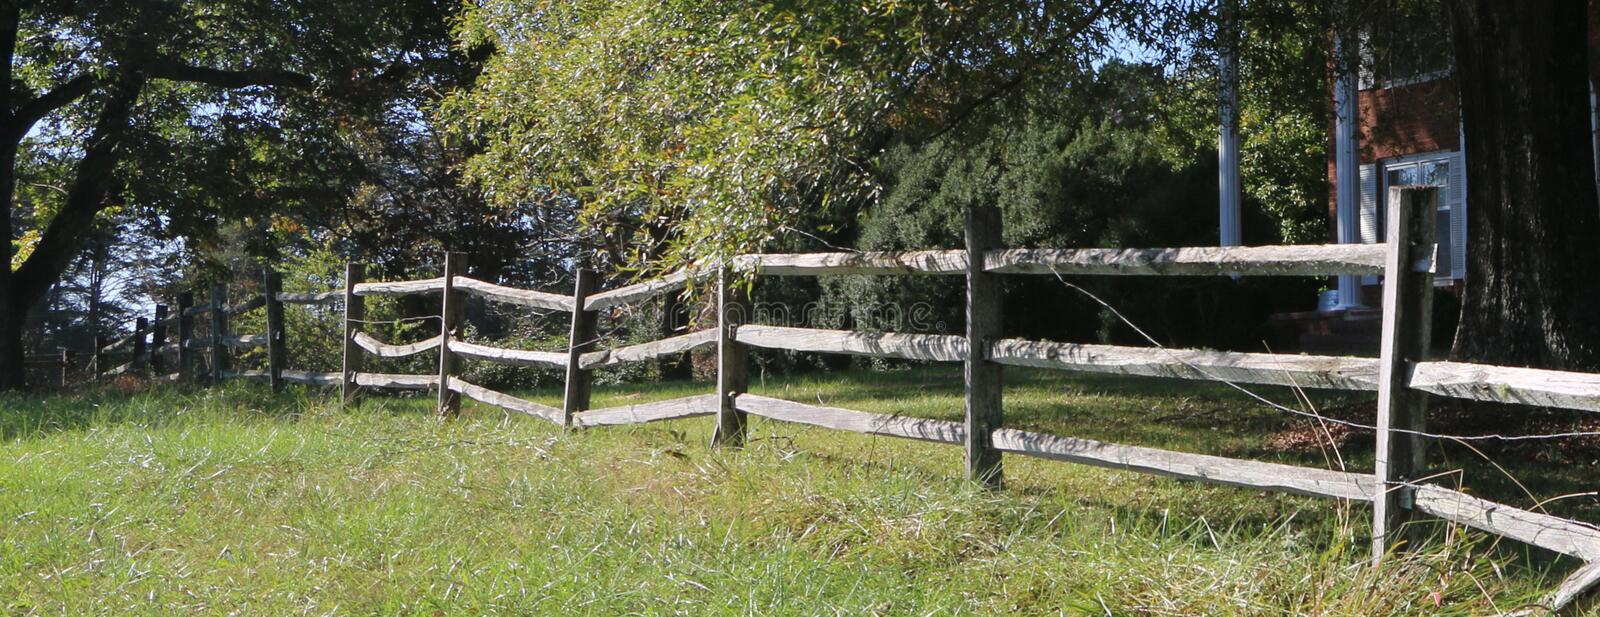 Split Rail Fence Stock Photos Download 1 217 Royalty